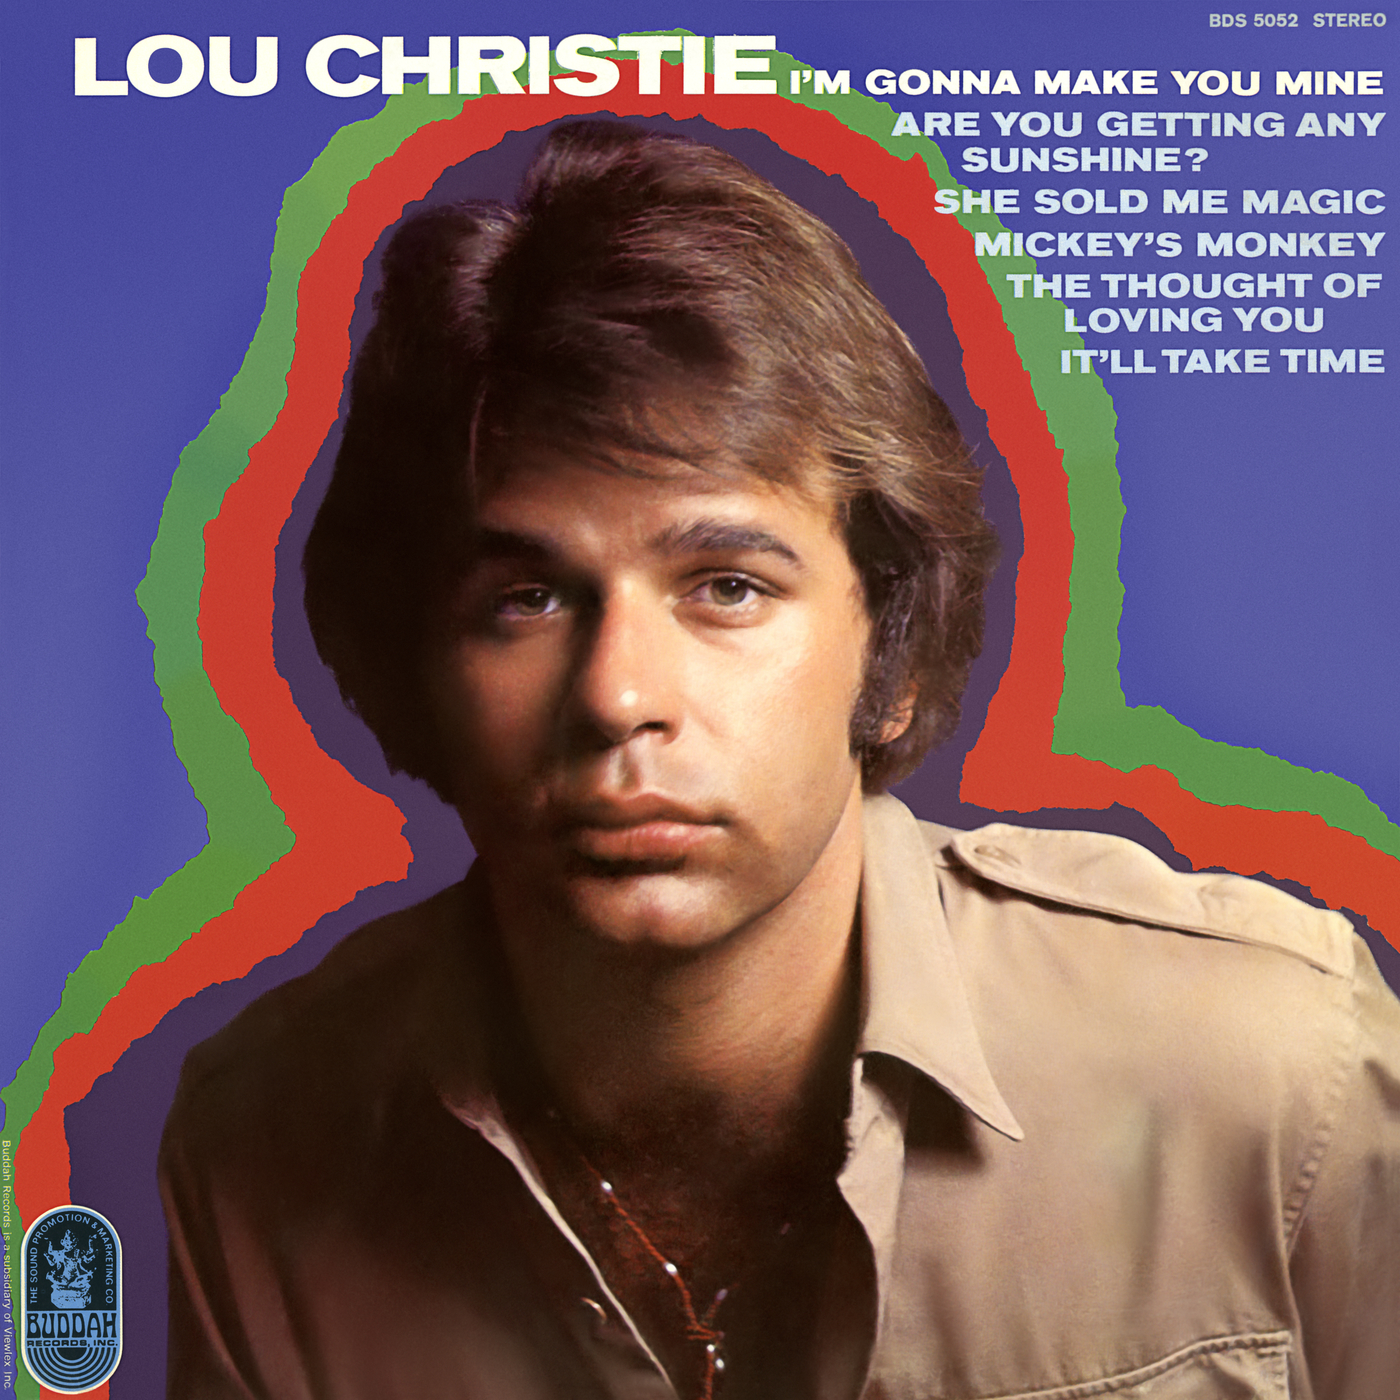 I'm Gonna Make You Mine - Lou Christie